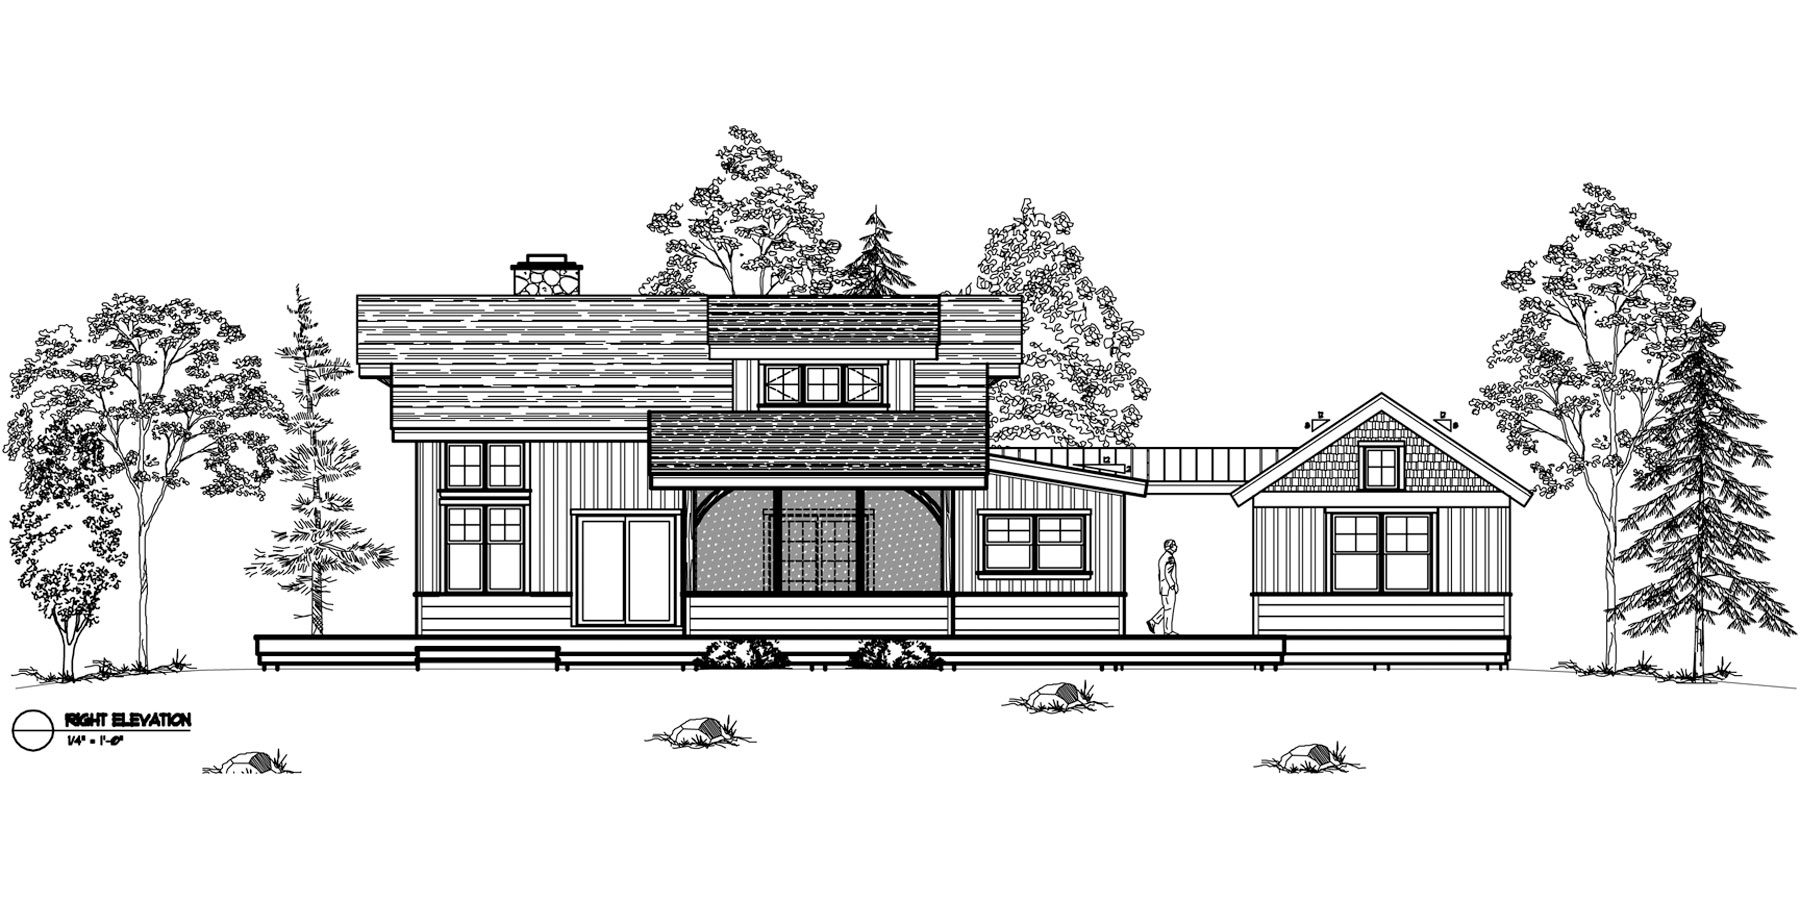 Normerica Timber Frames, House Plan, The Ranger 3575, Right Elevation